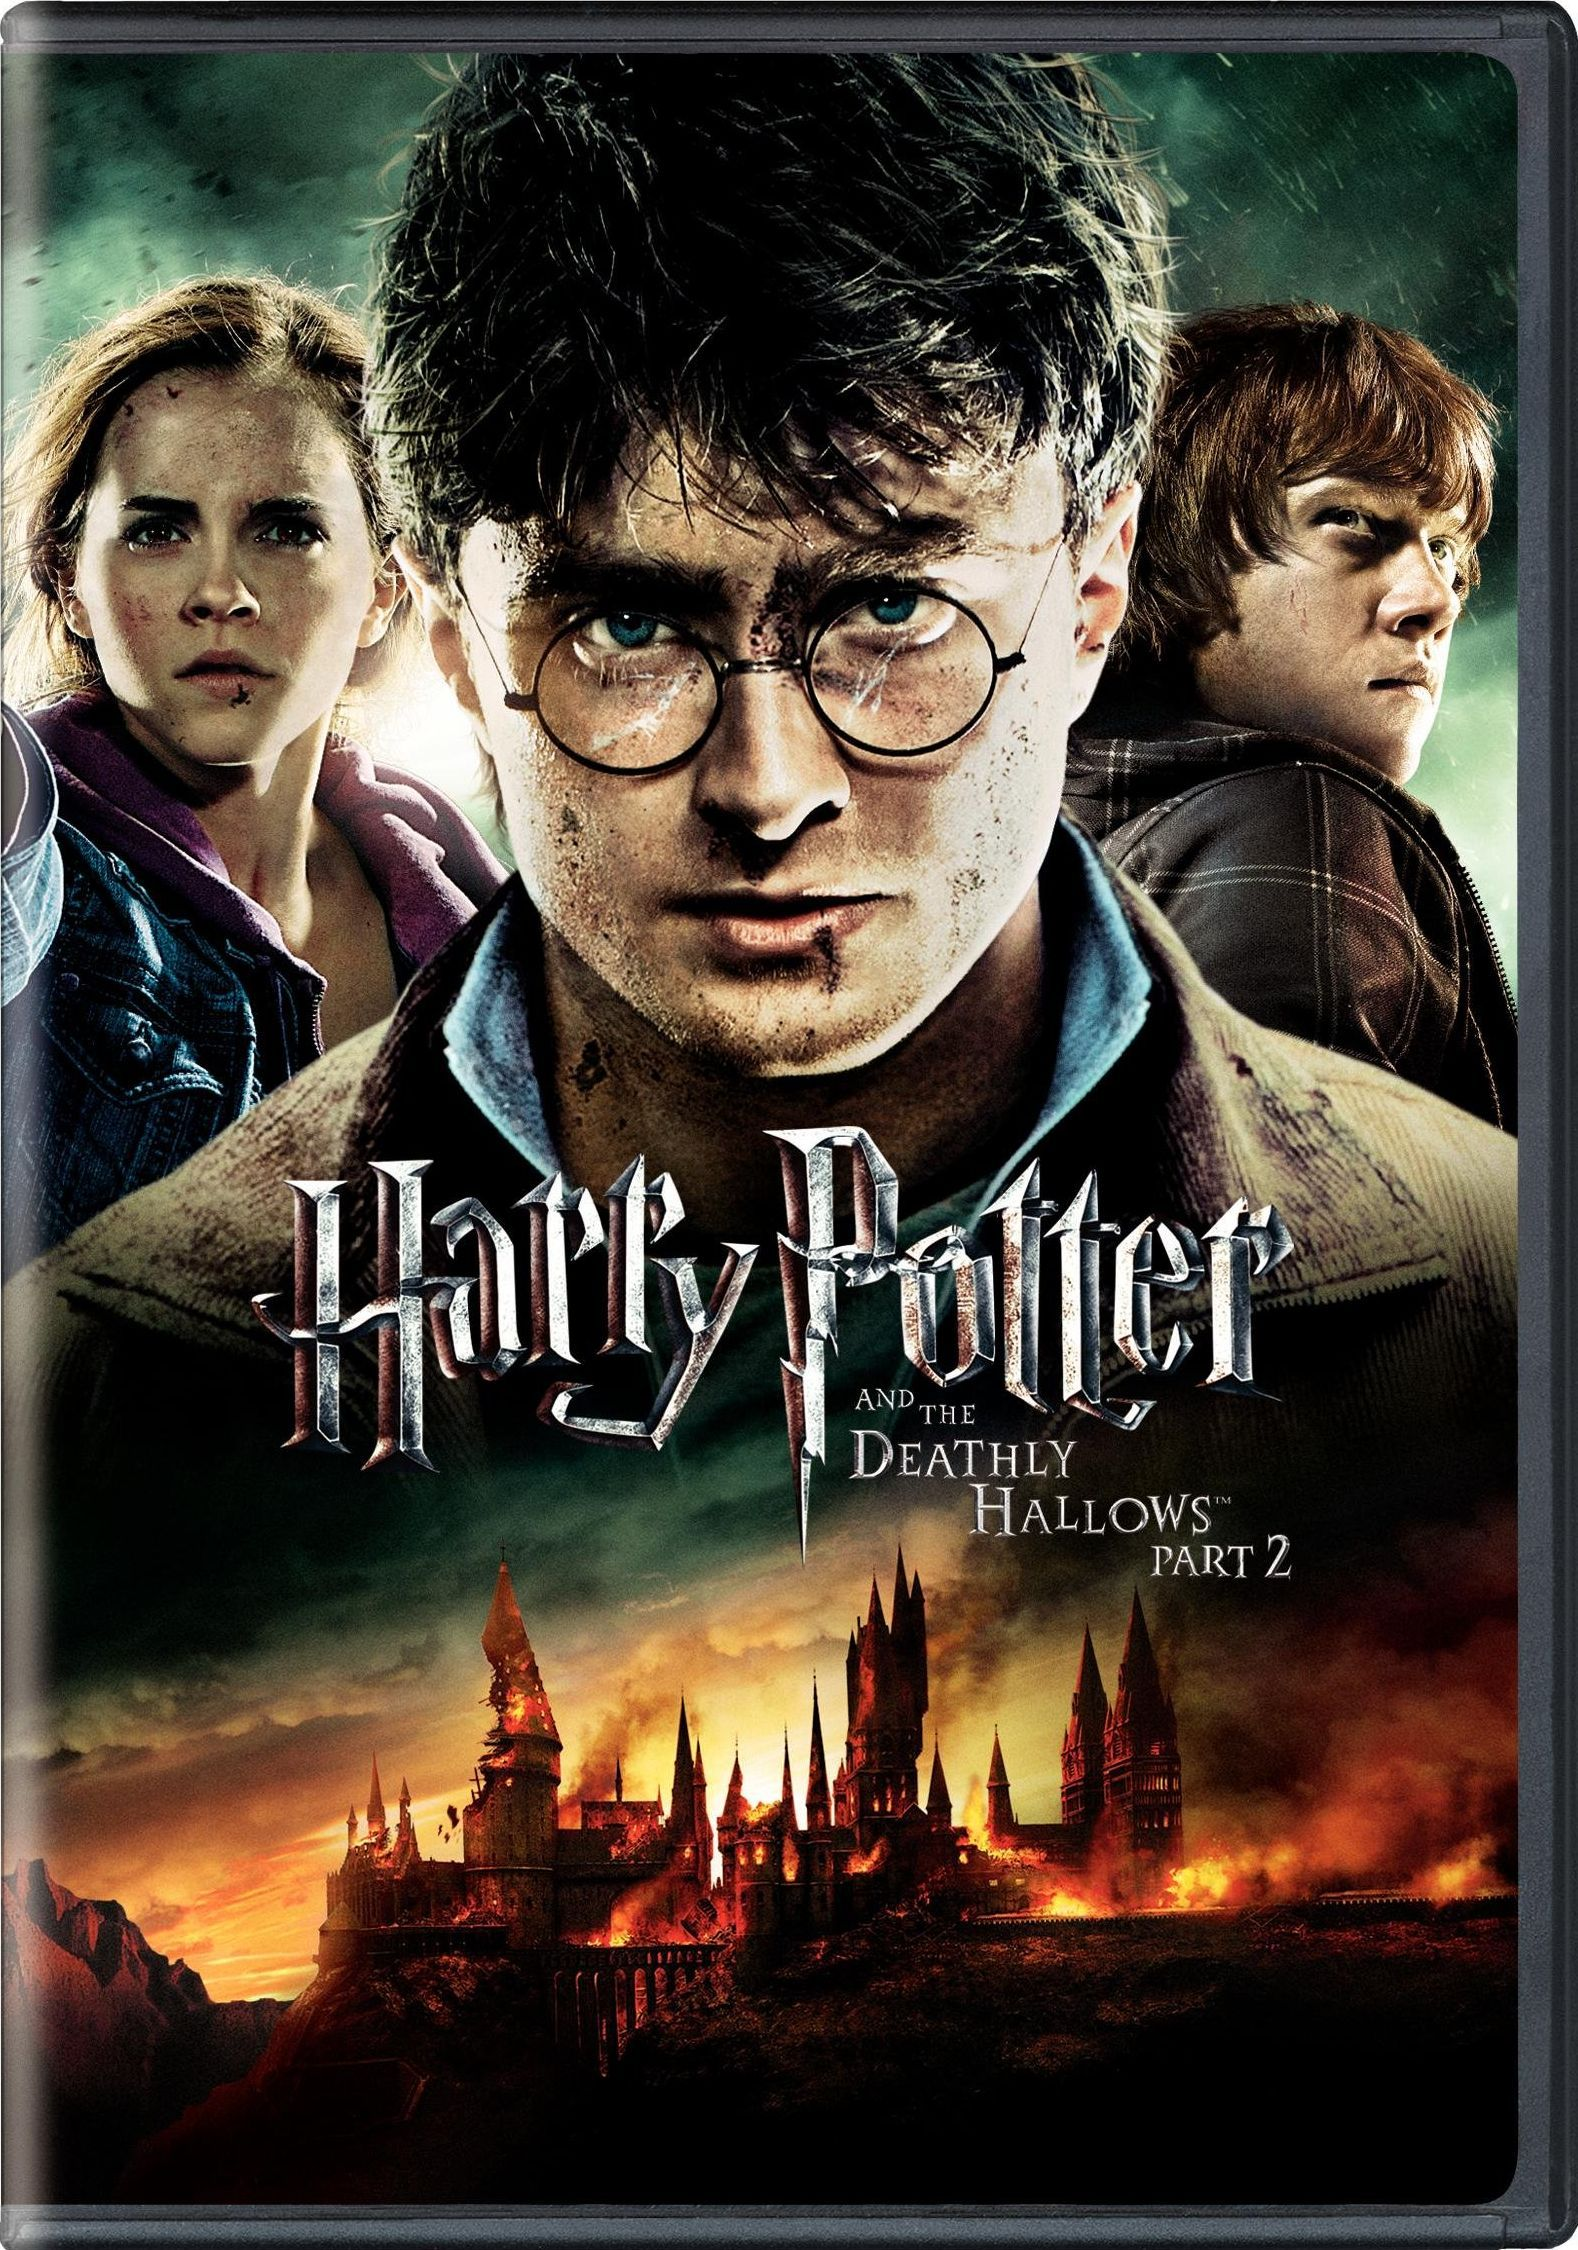 Harry Potter And The Deathly Hallows Full Book Pdf